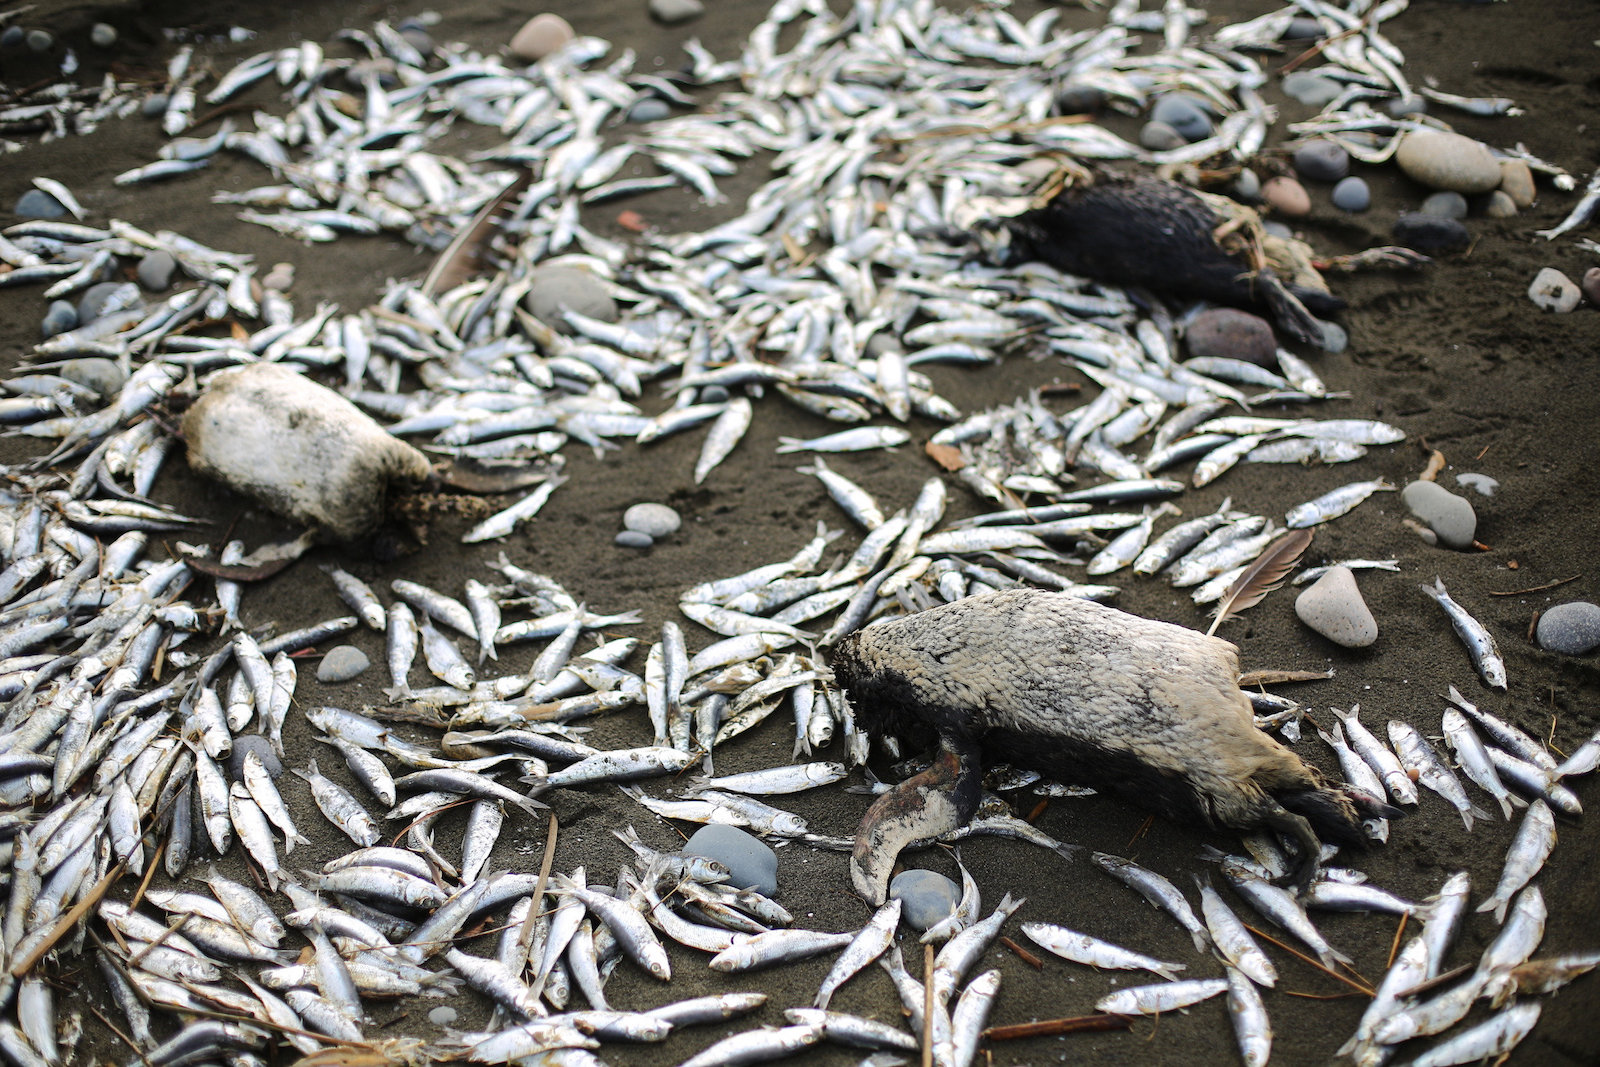 Dead penguins and salmon on the beach of Chiloé Island. Photo: Andrés Pérez for R35R.